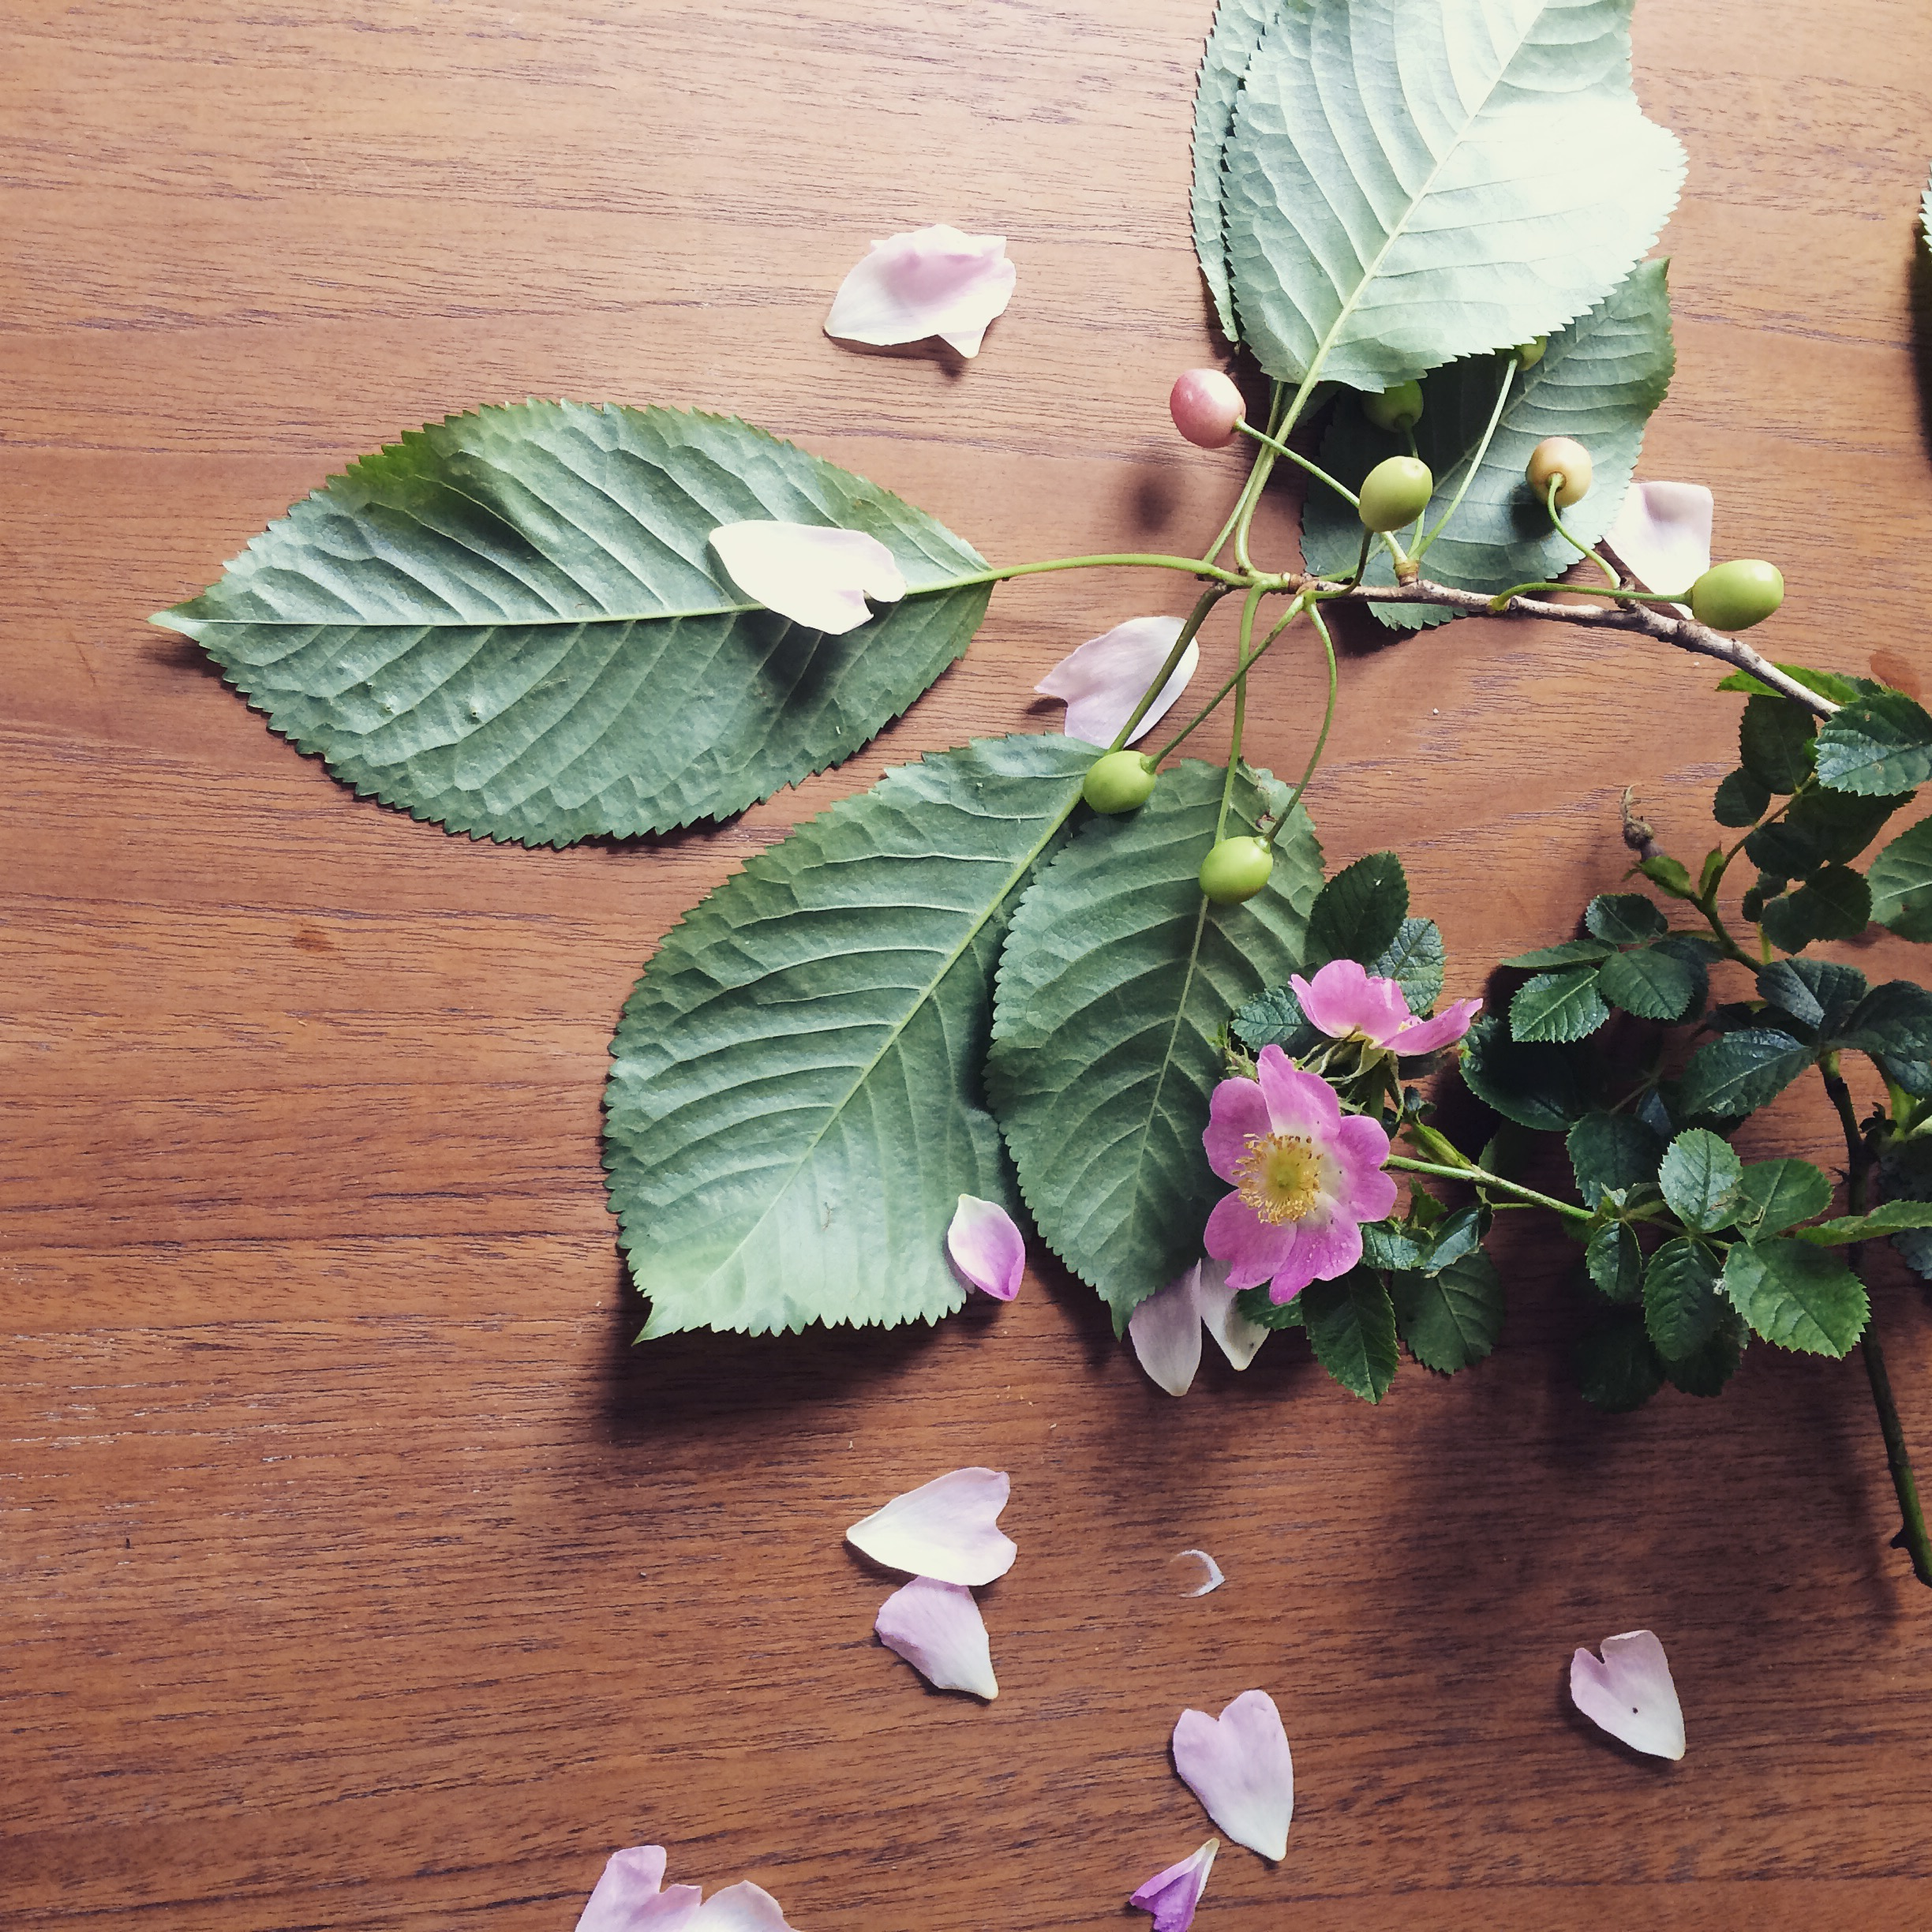 Joys of June: Wild roses and ripening cherries! I'm taking inspiration form those delicate pale pink petals and gorgeous foliage